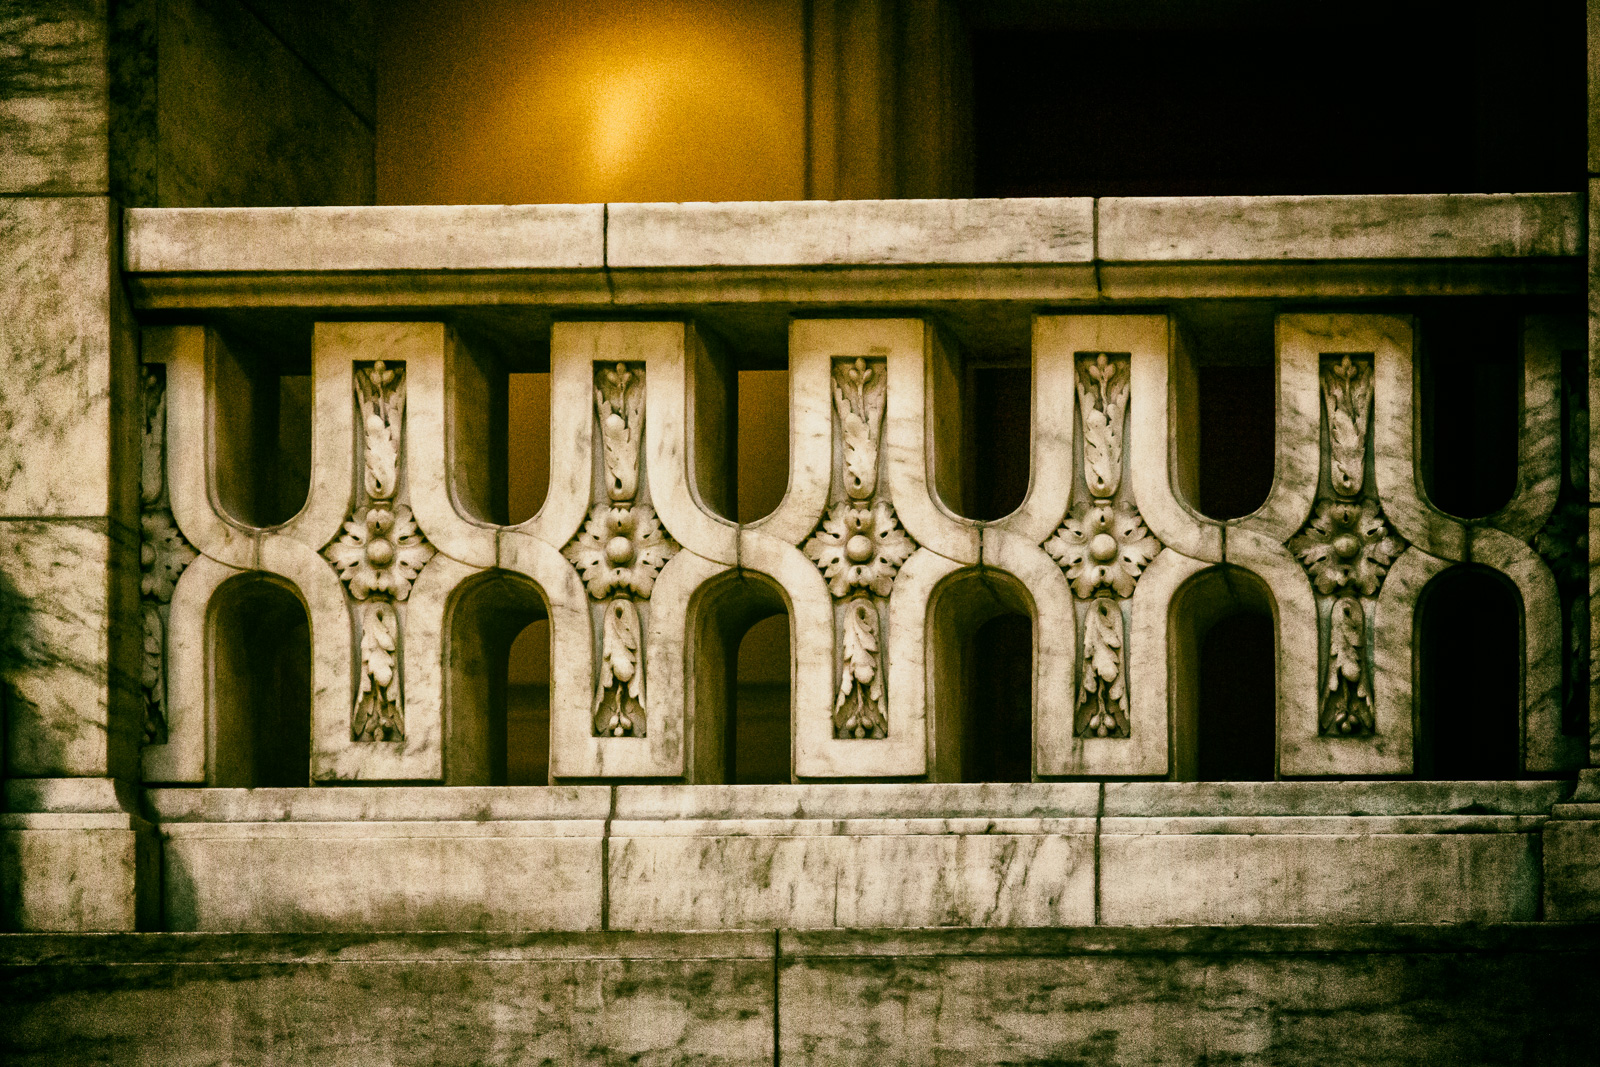 Stone Bannister